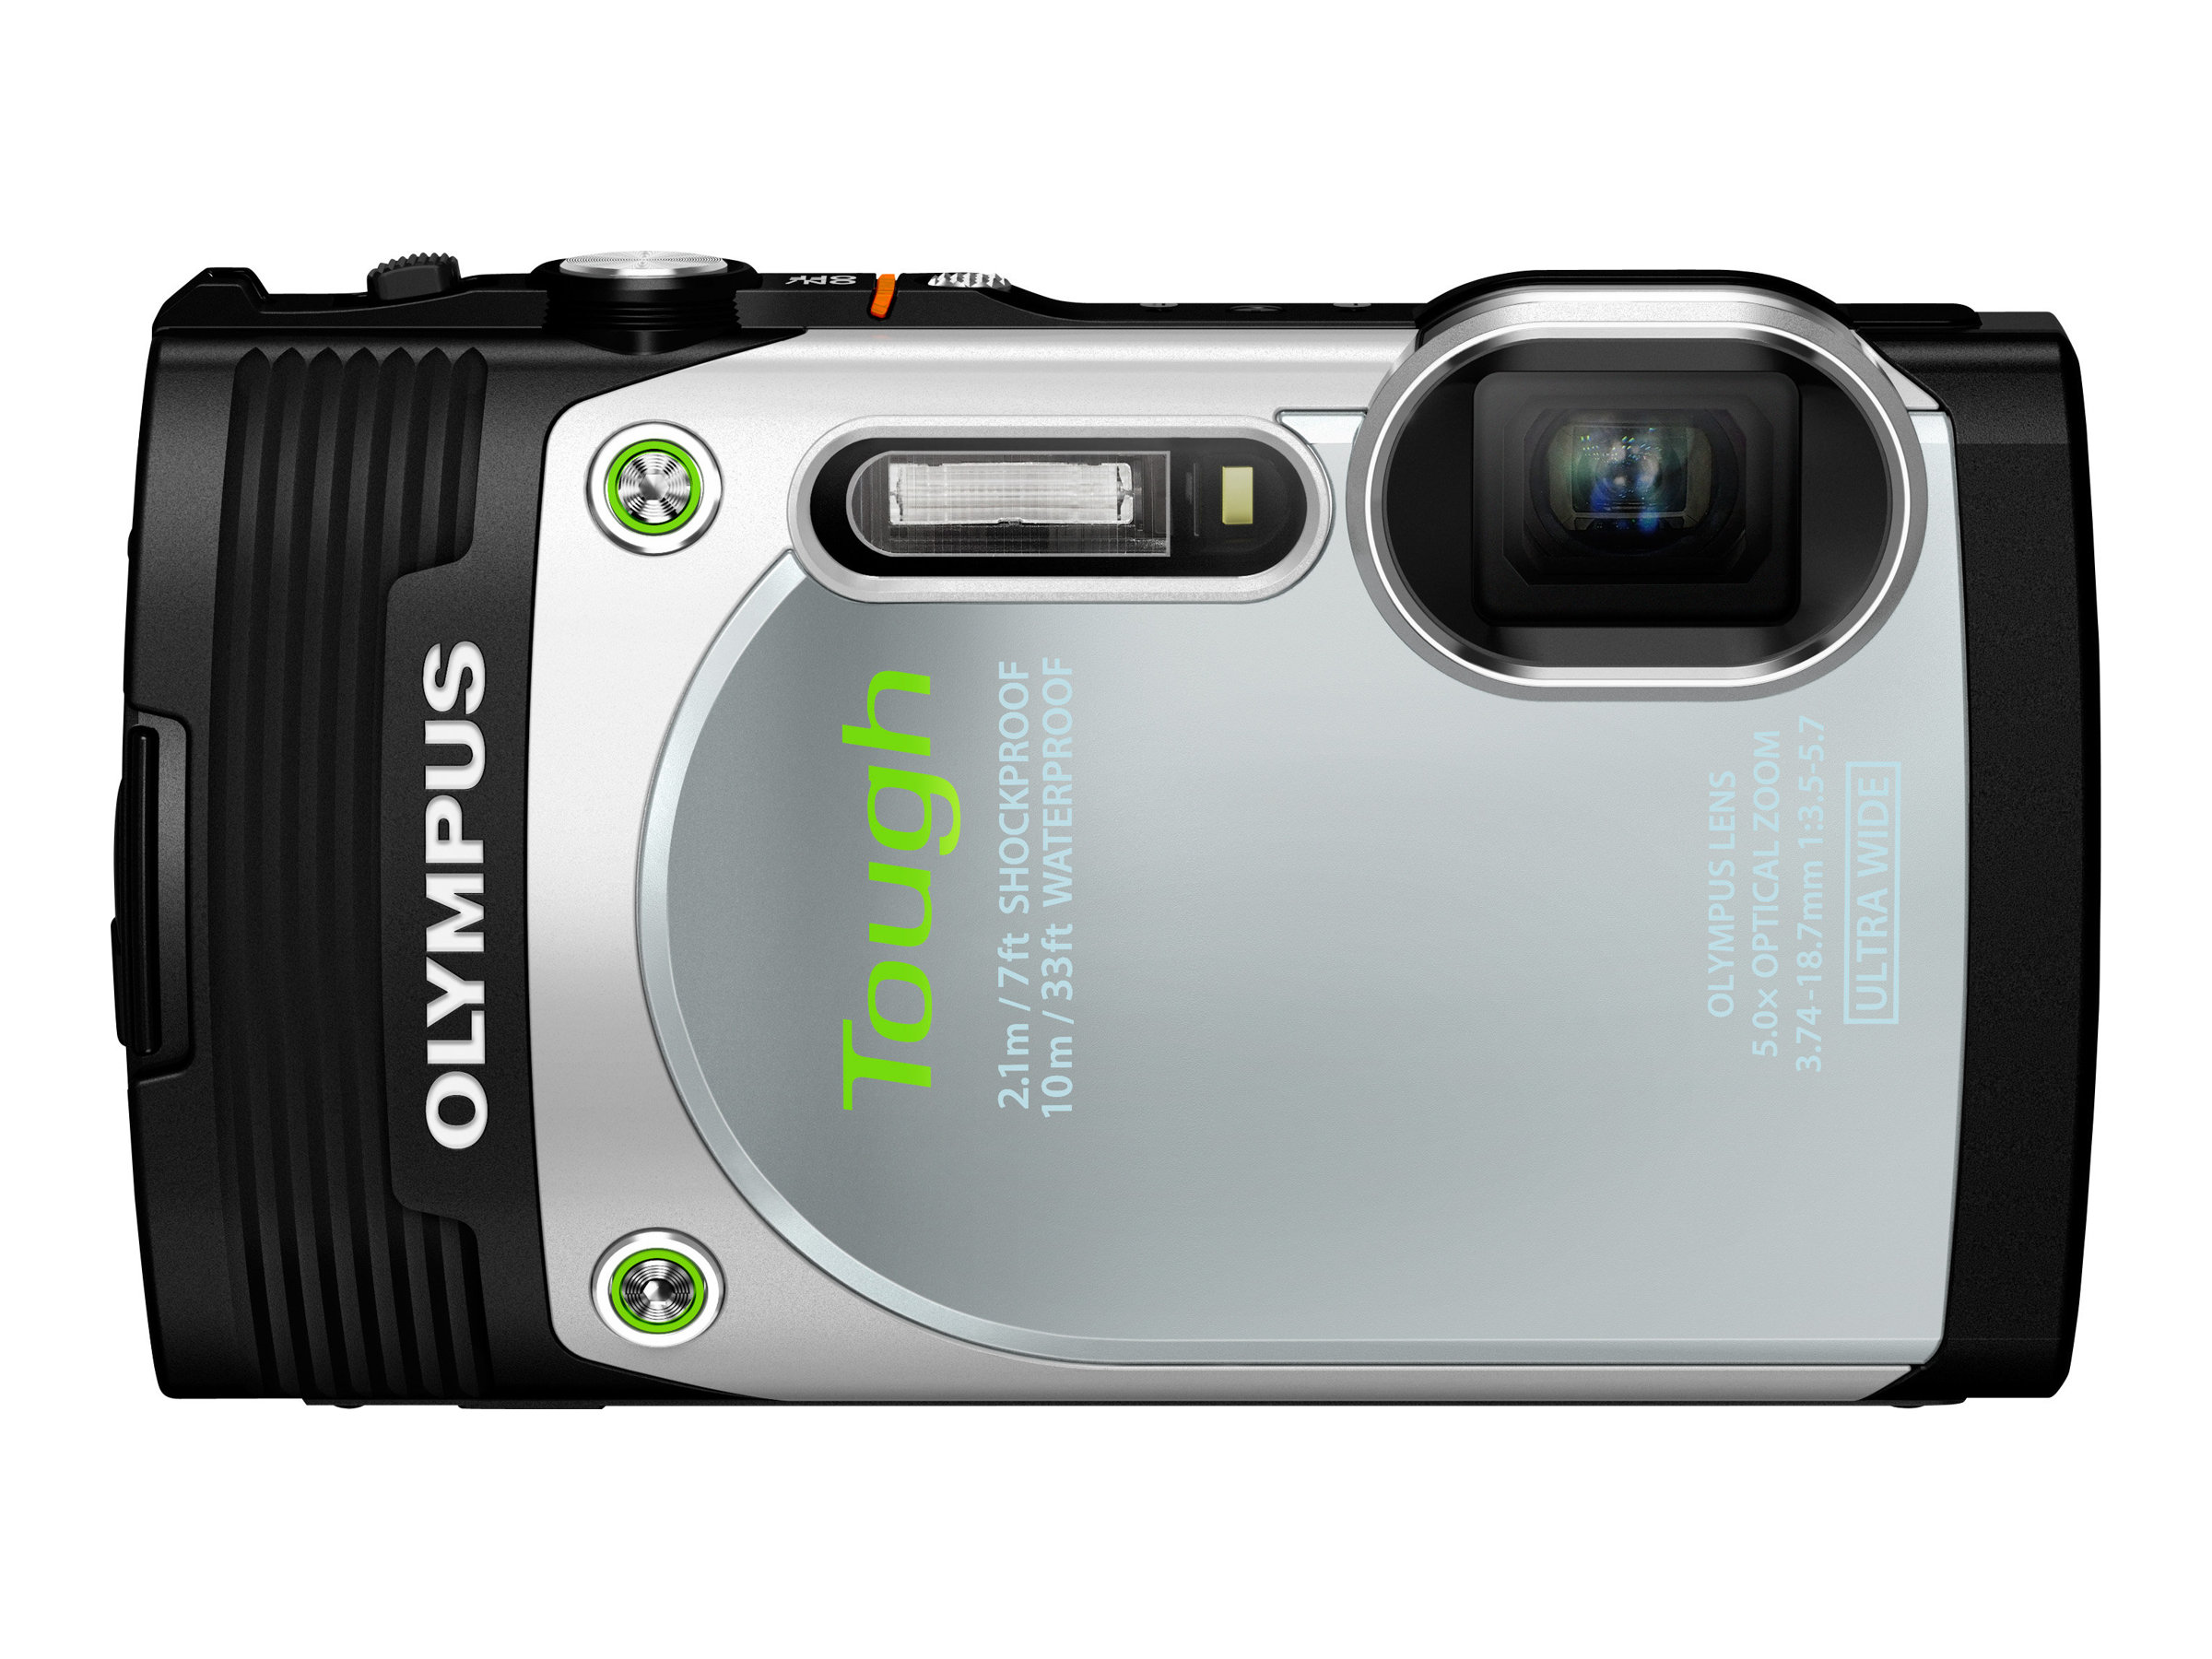 Olympus Stylus Tough TG-850 Digital Camera, Silver, V104150SU000